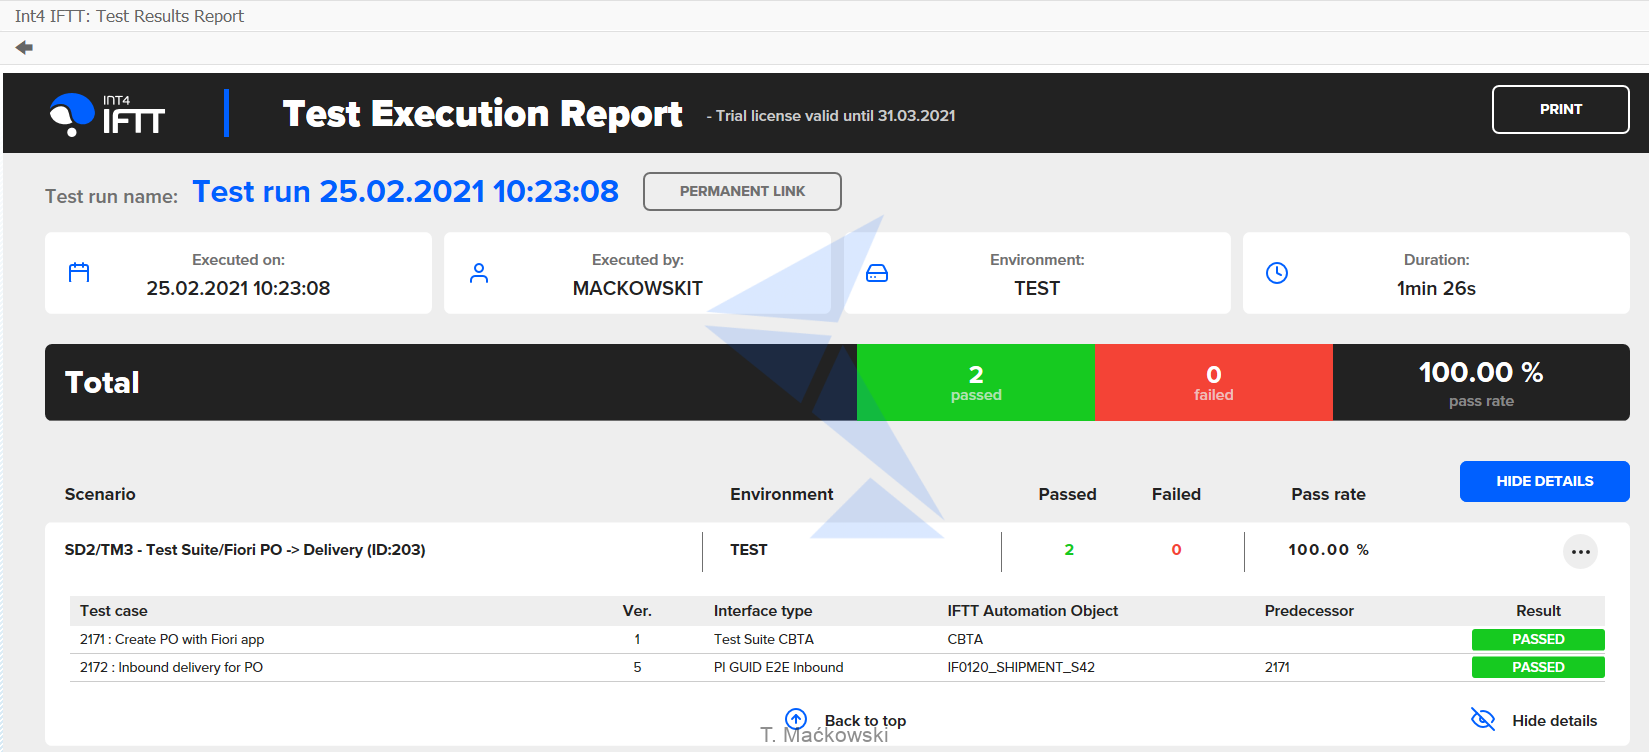 Int4_IFTT_Test_execution_report